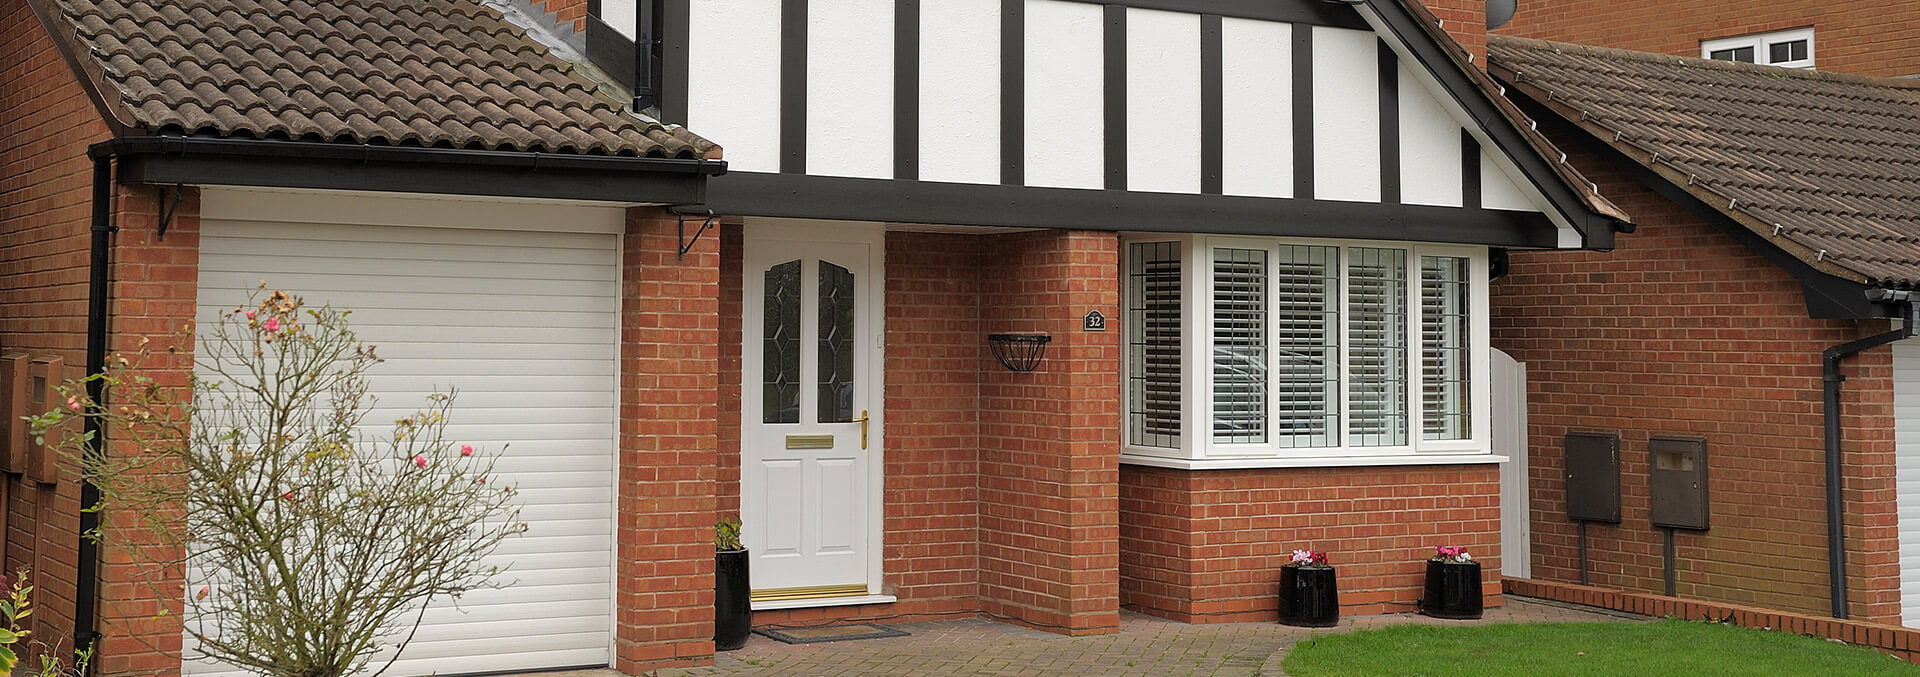 White uPVC bay window and entrance door